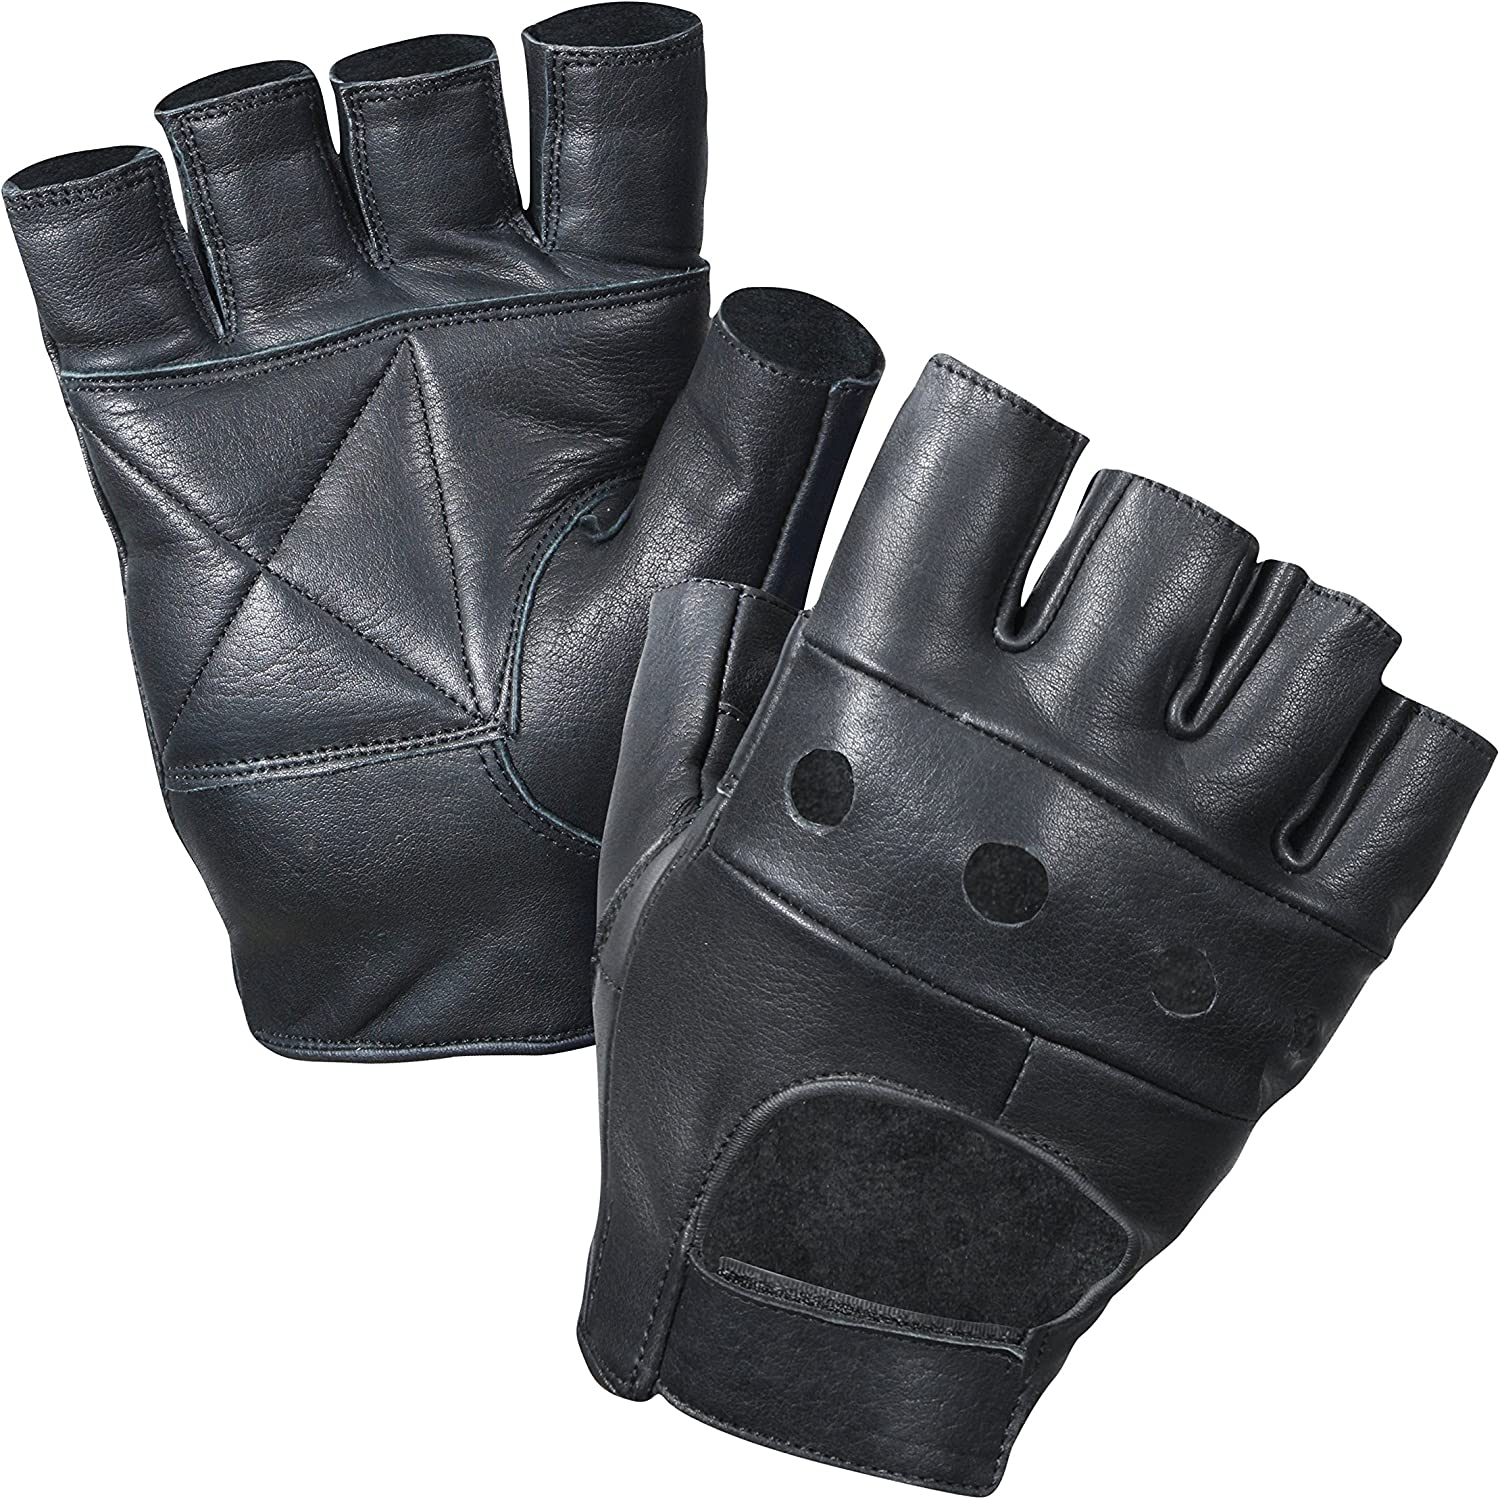 Leather FINGERLESS Gloves Tactical Motorcycle Padded Police Military SWAT Biker